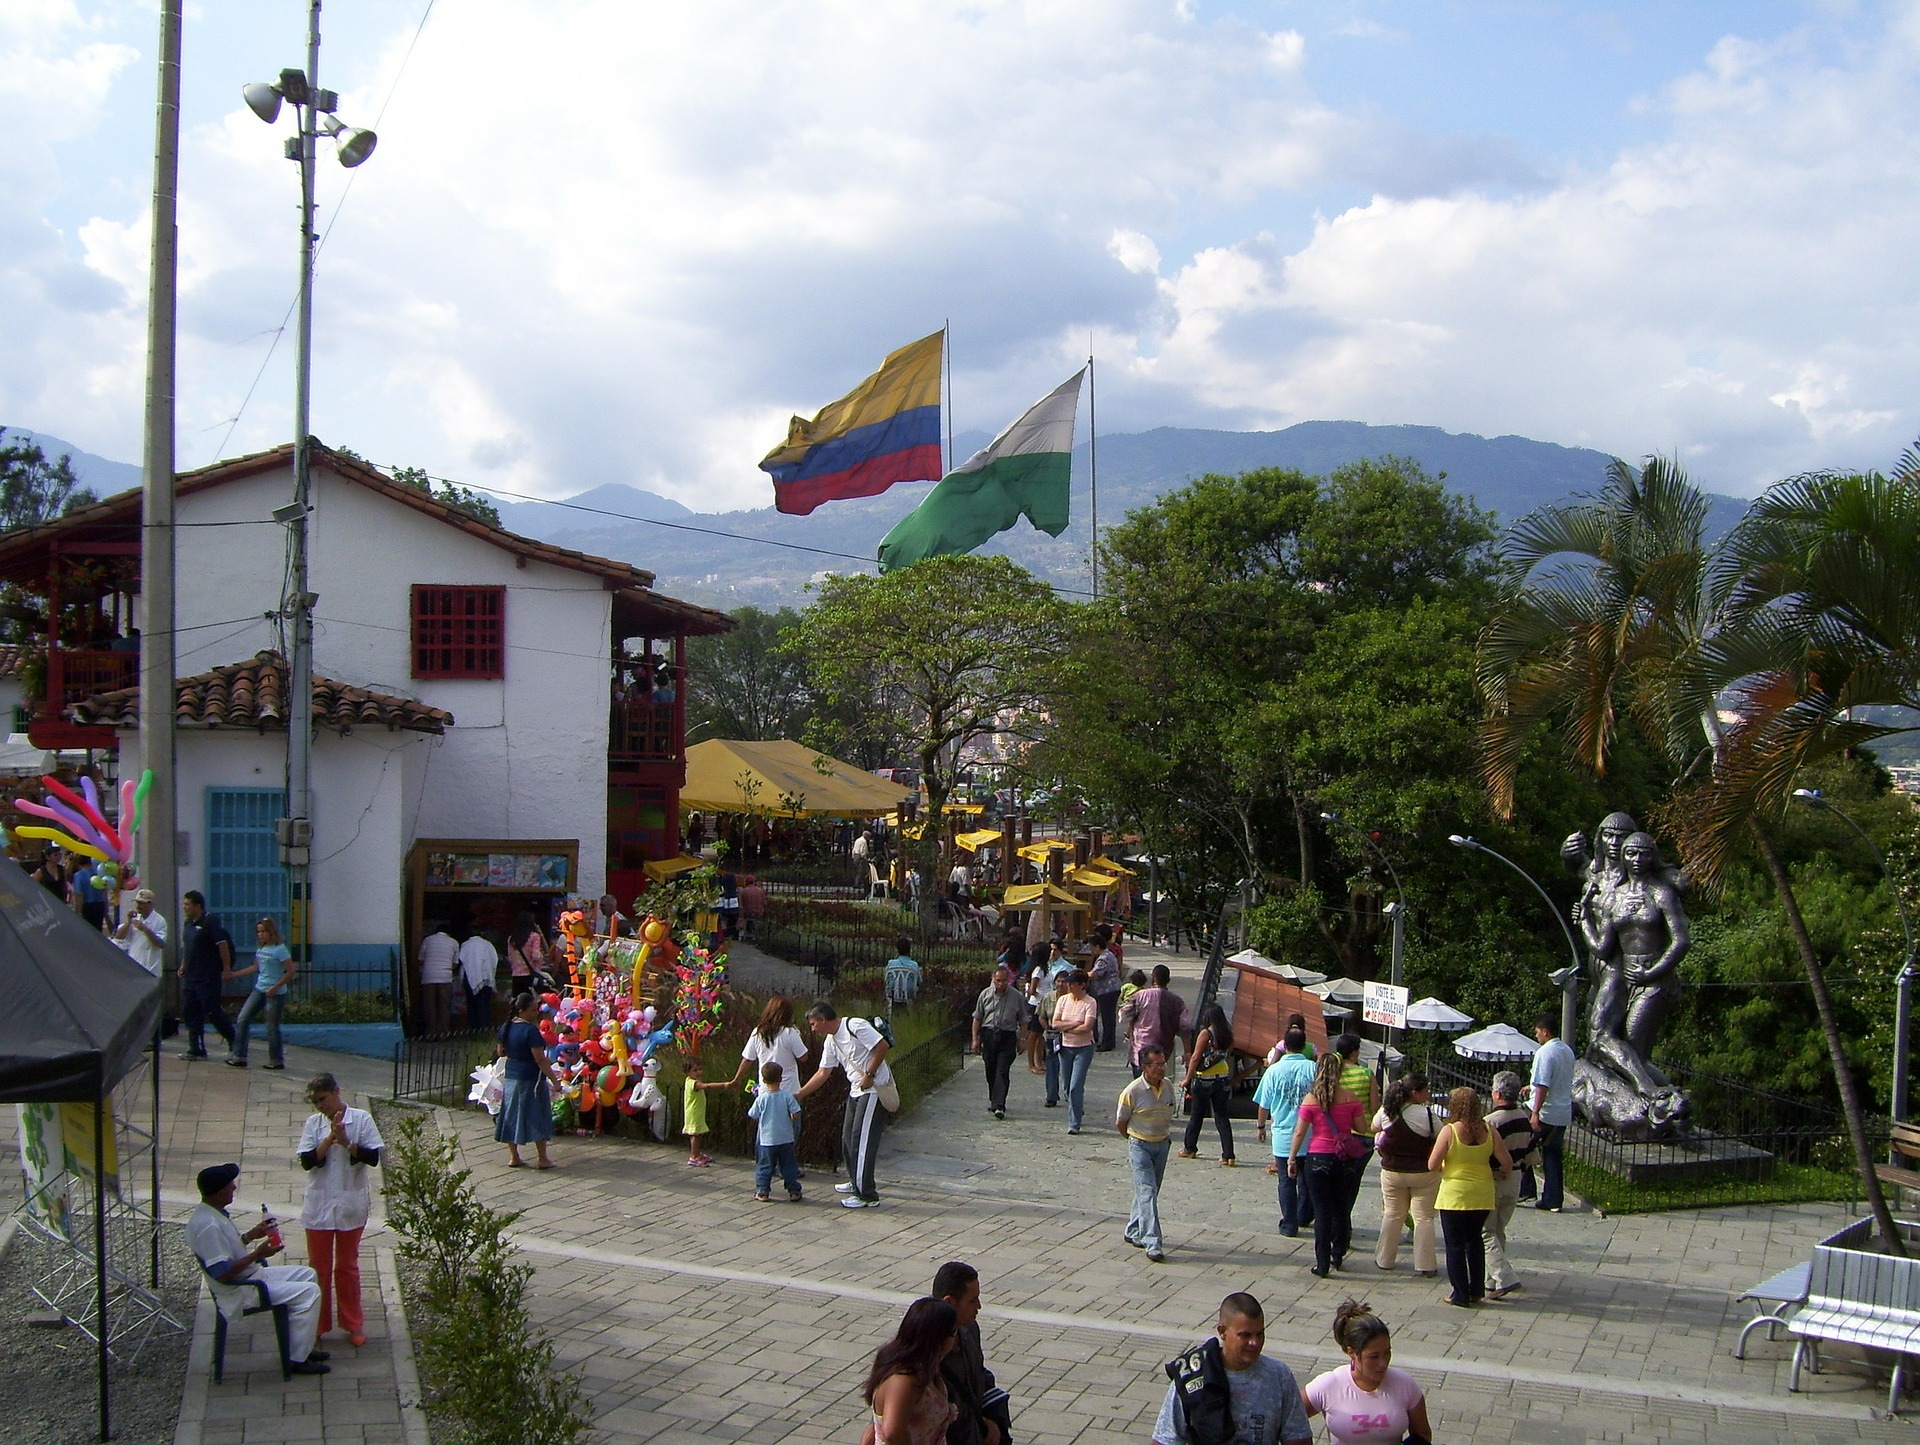 A look at what you can expect to see on a walking tour of Medellin.